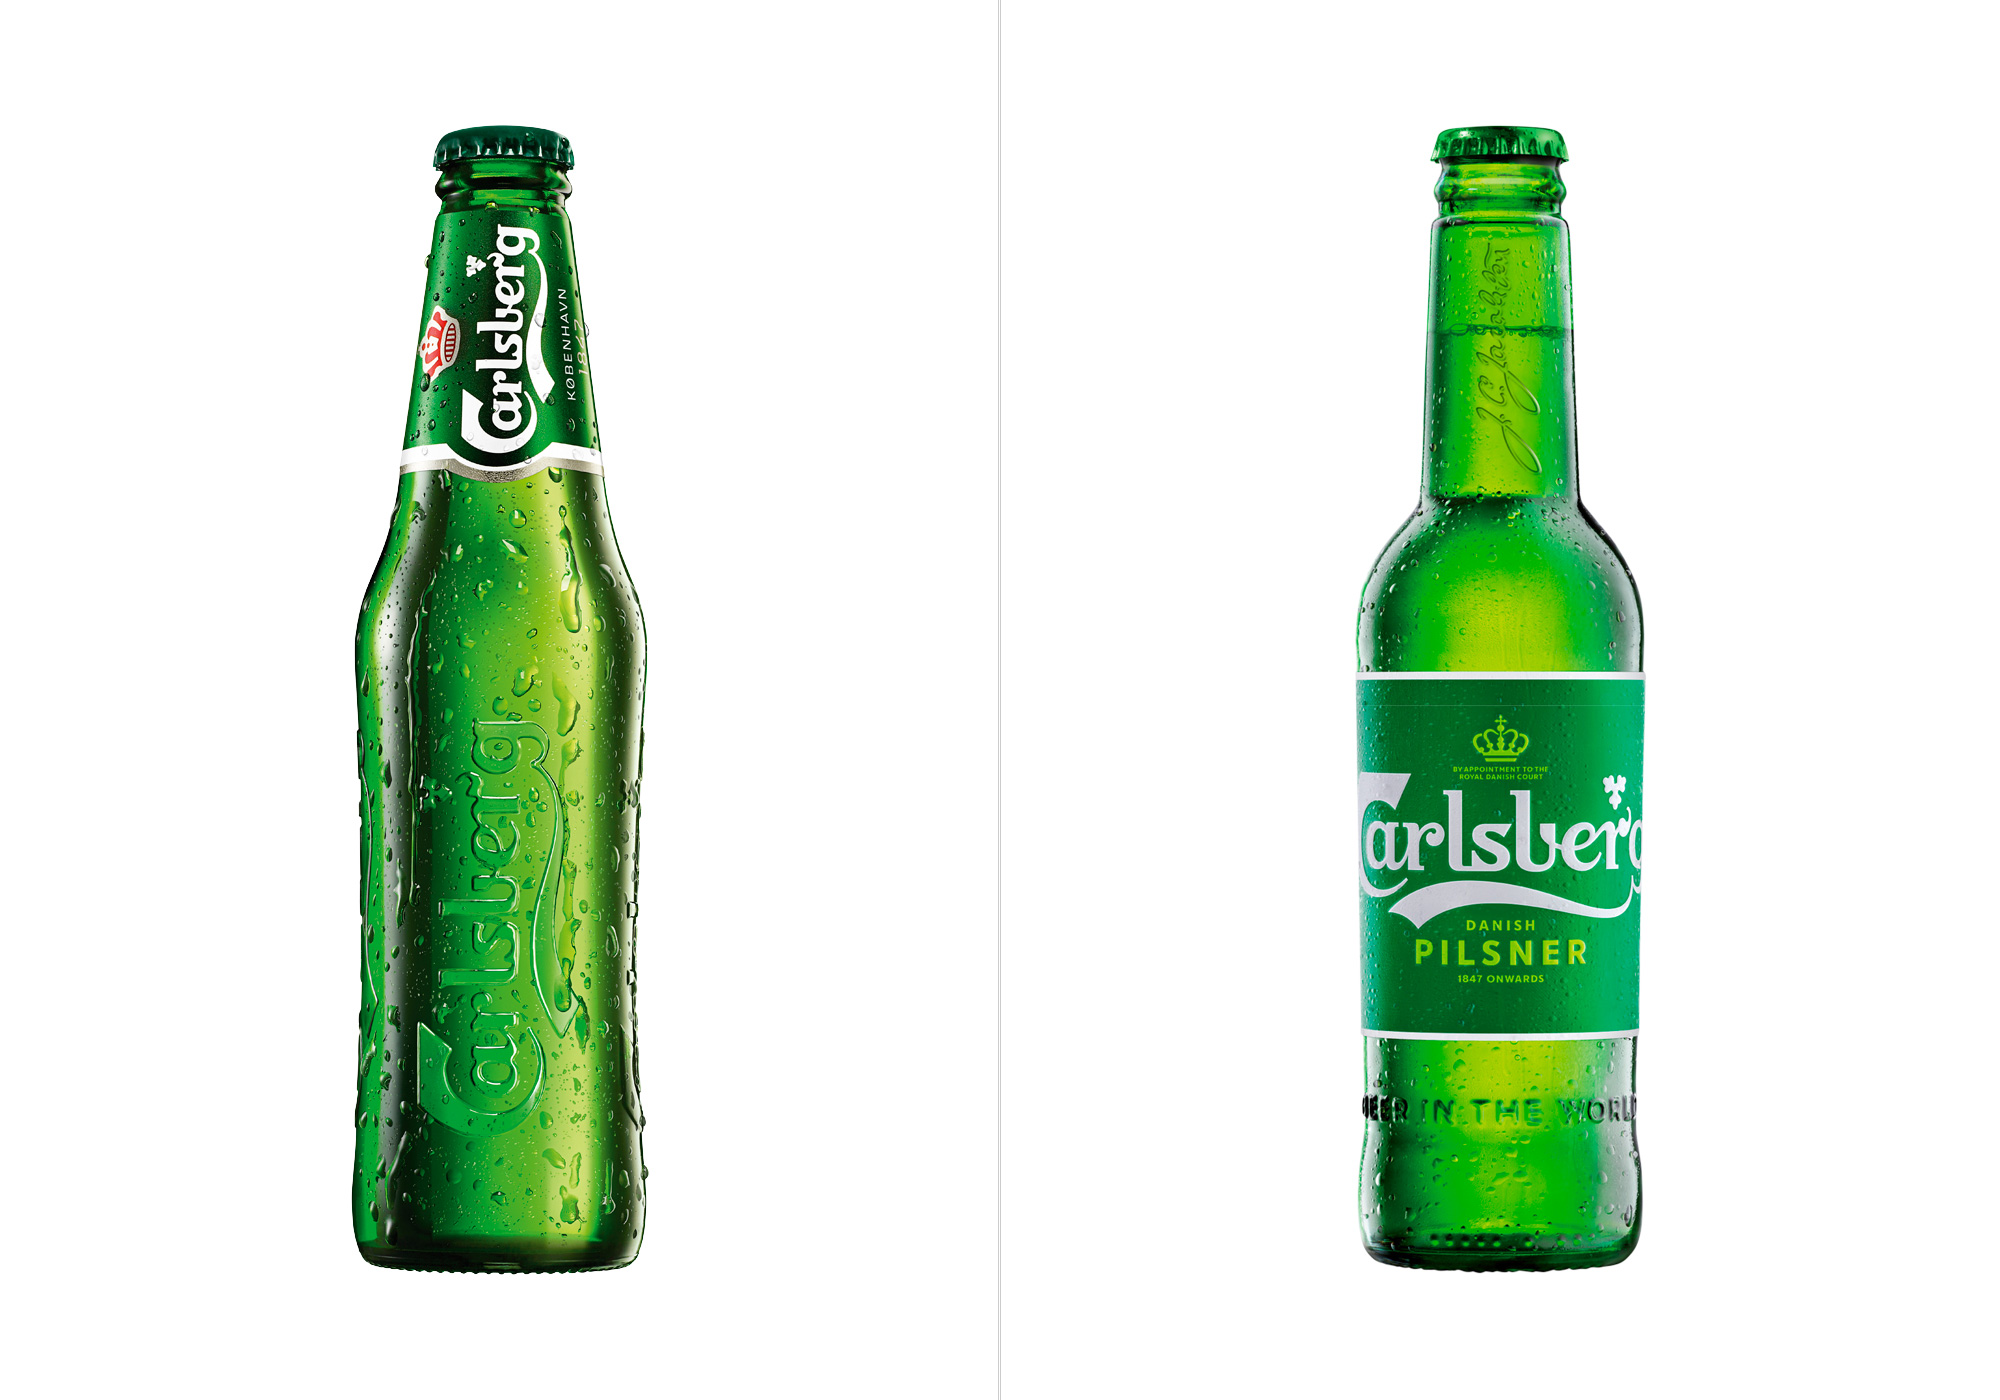 Bottle before & after (by way of Brand New)